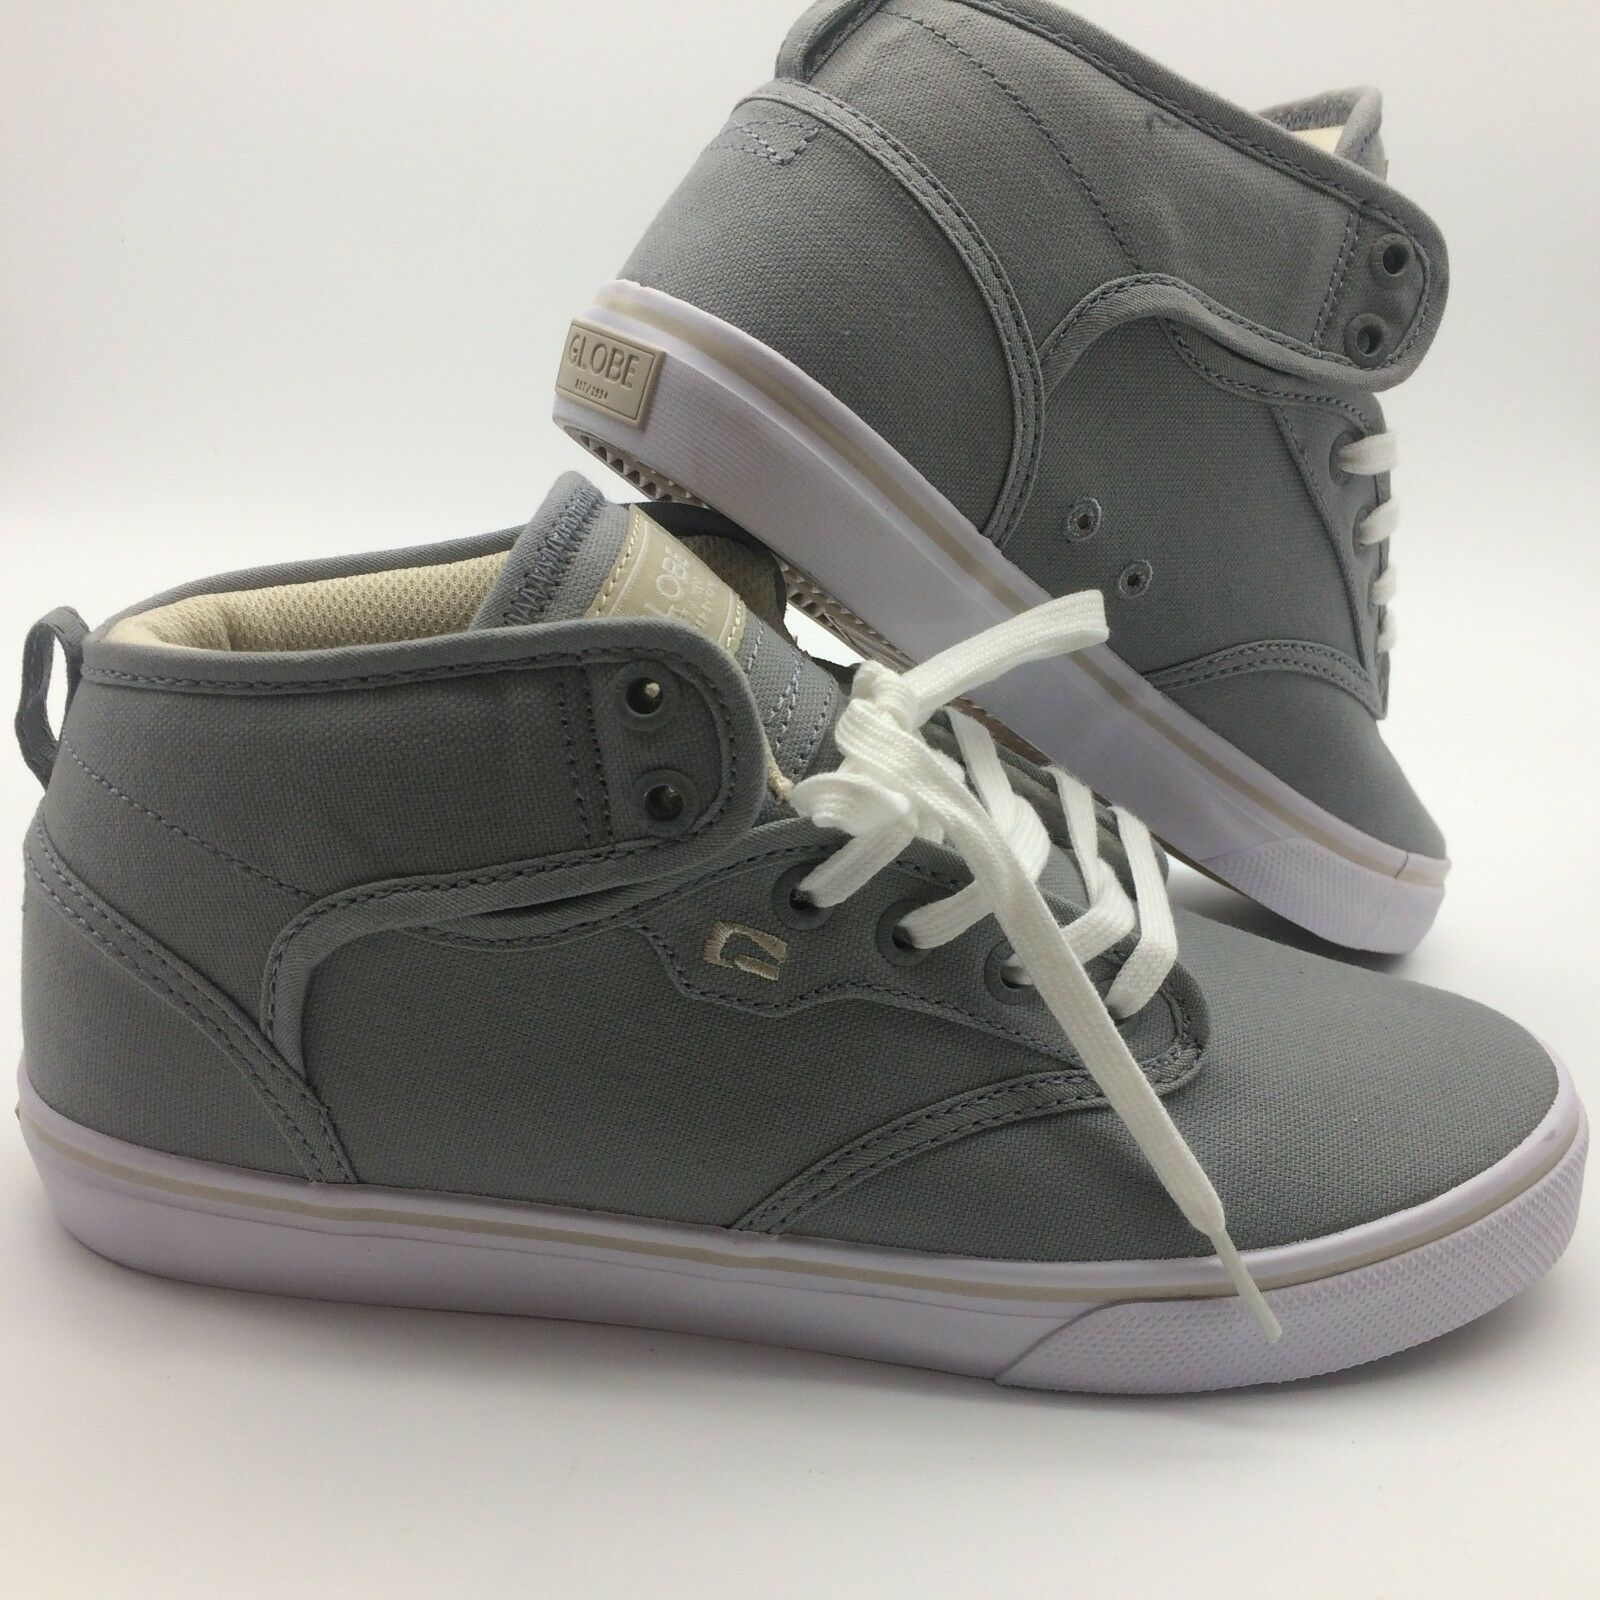 Globe hommes Chaussures ''Motley Mid''-- Gris /Oatmeal